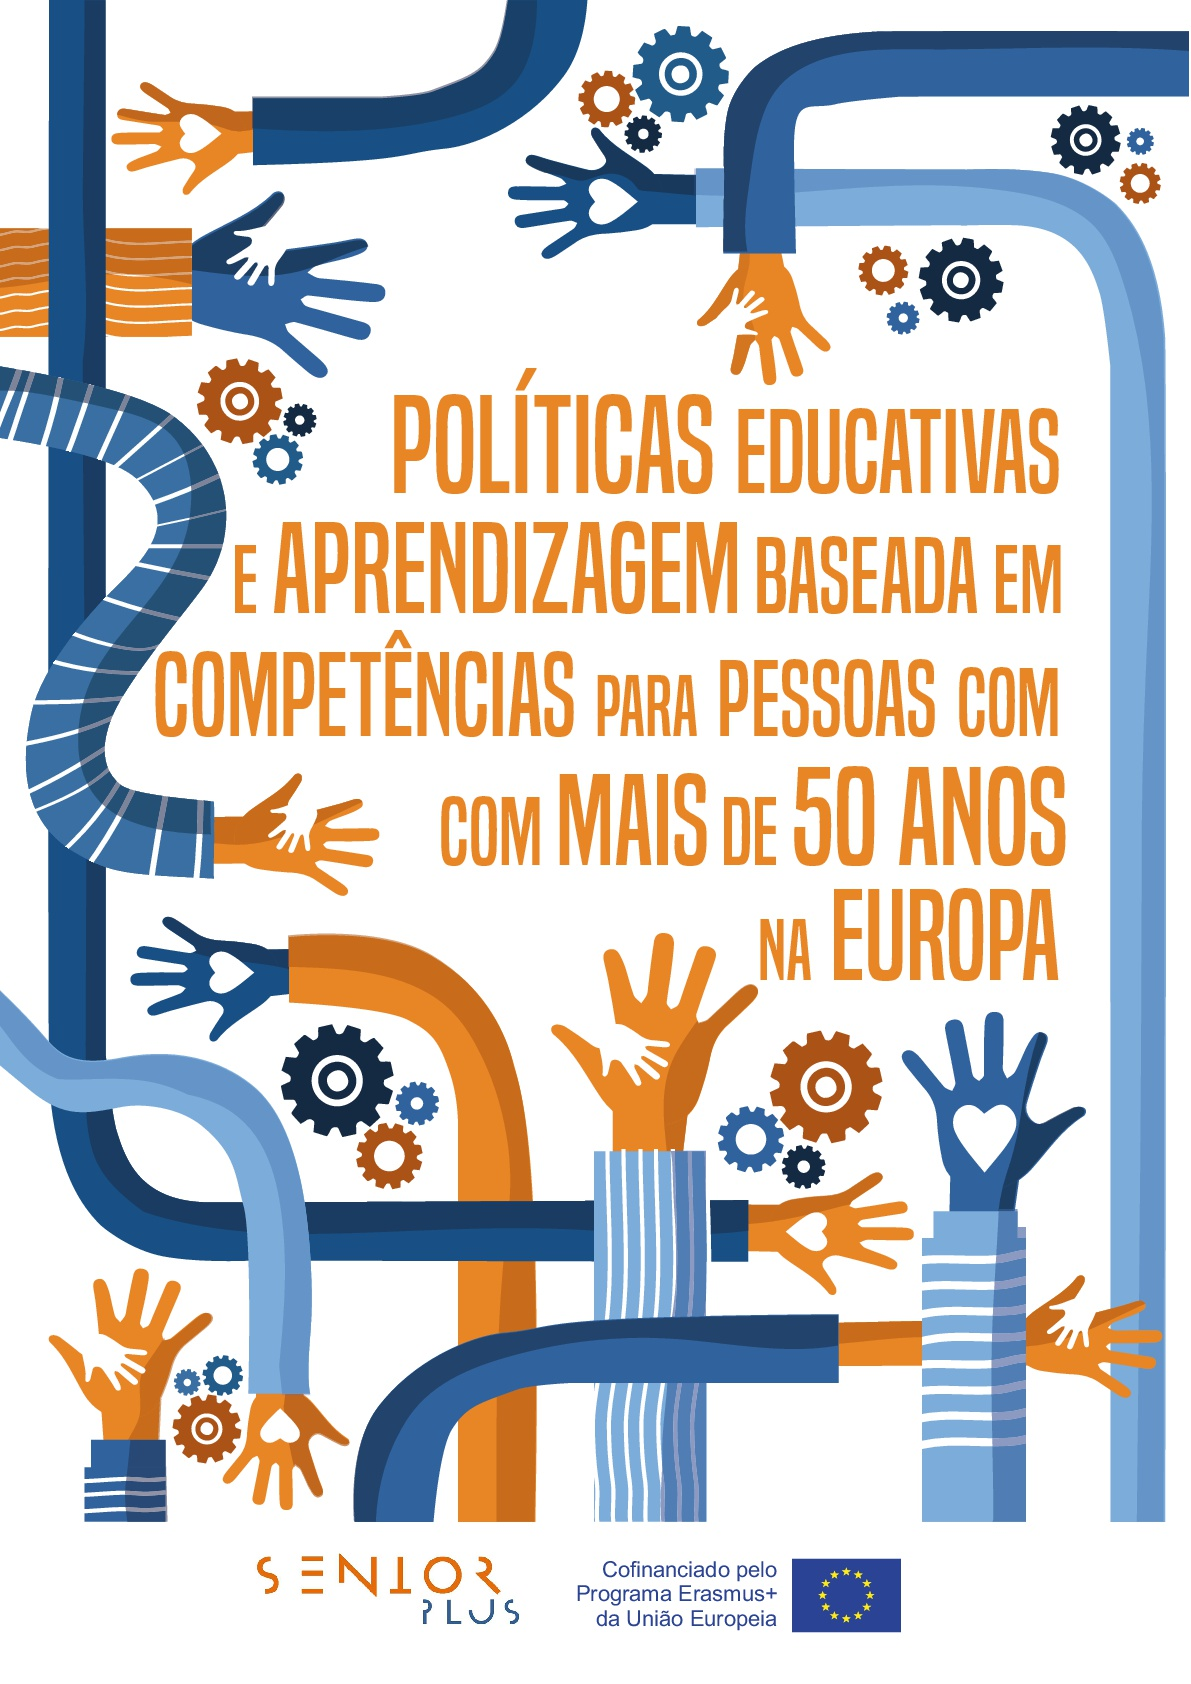 (PT) Education Policies and Competence based learning for over 50s in Europe